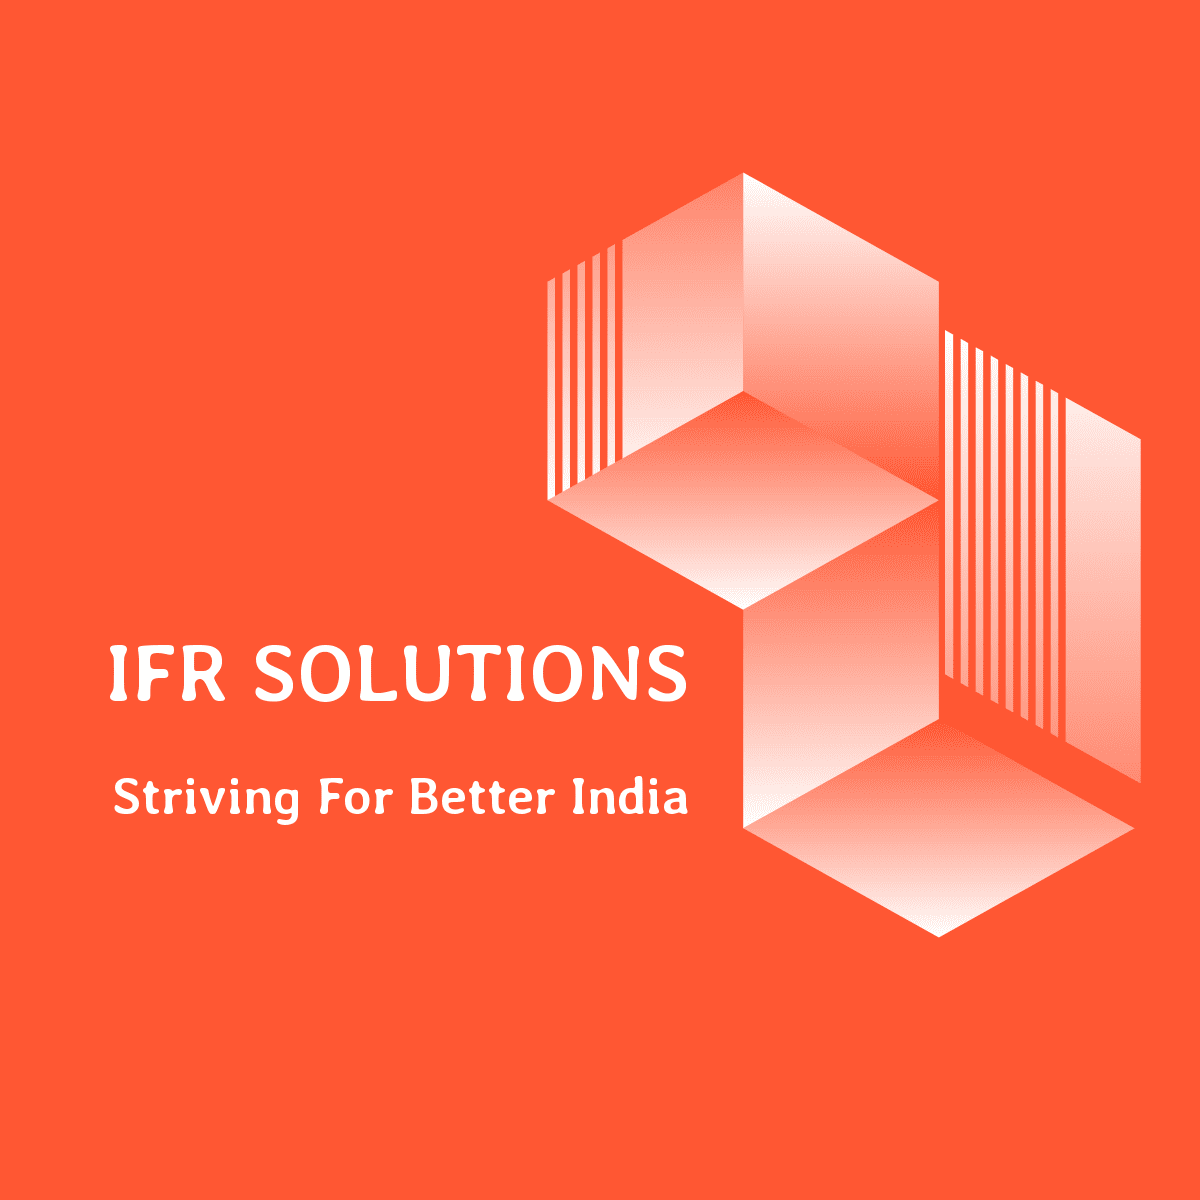 IFR solutions Logo